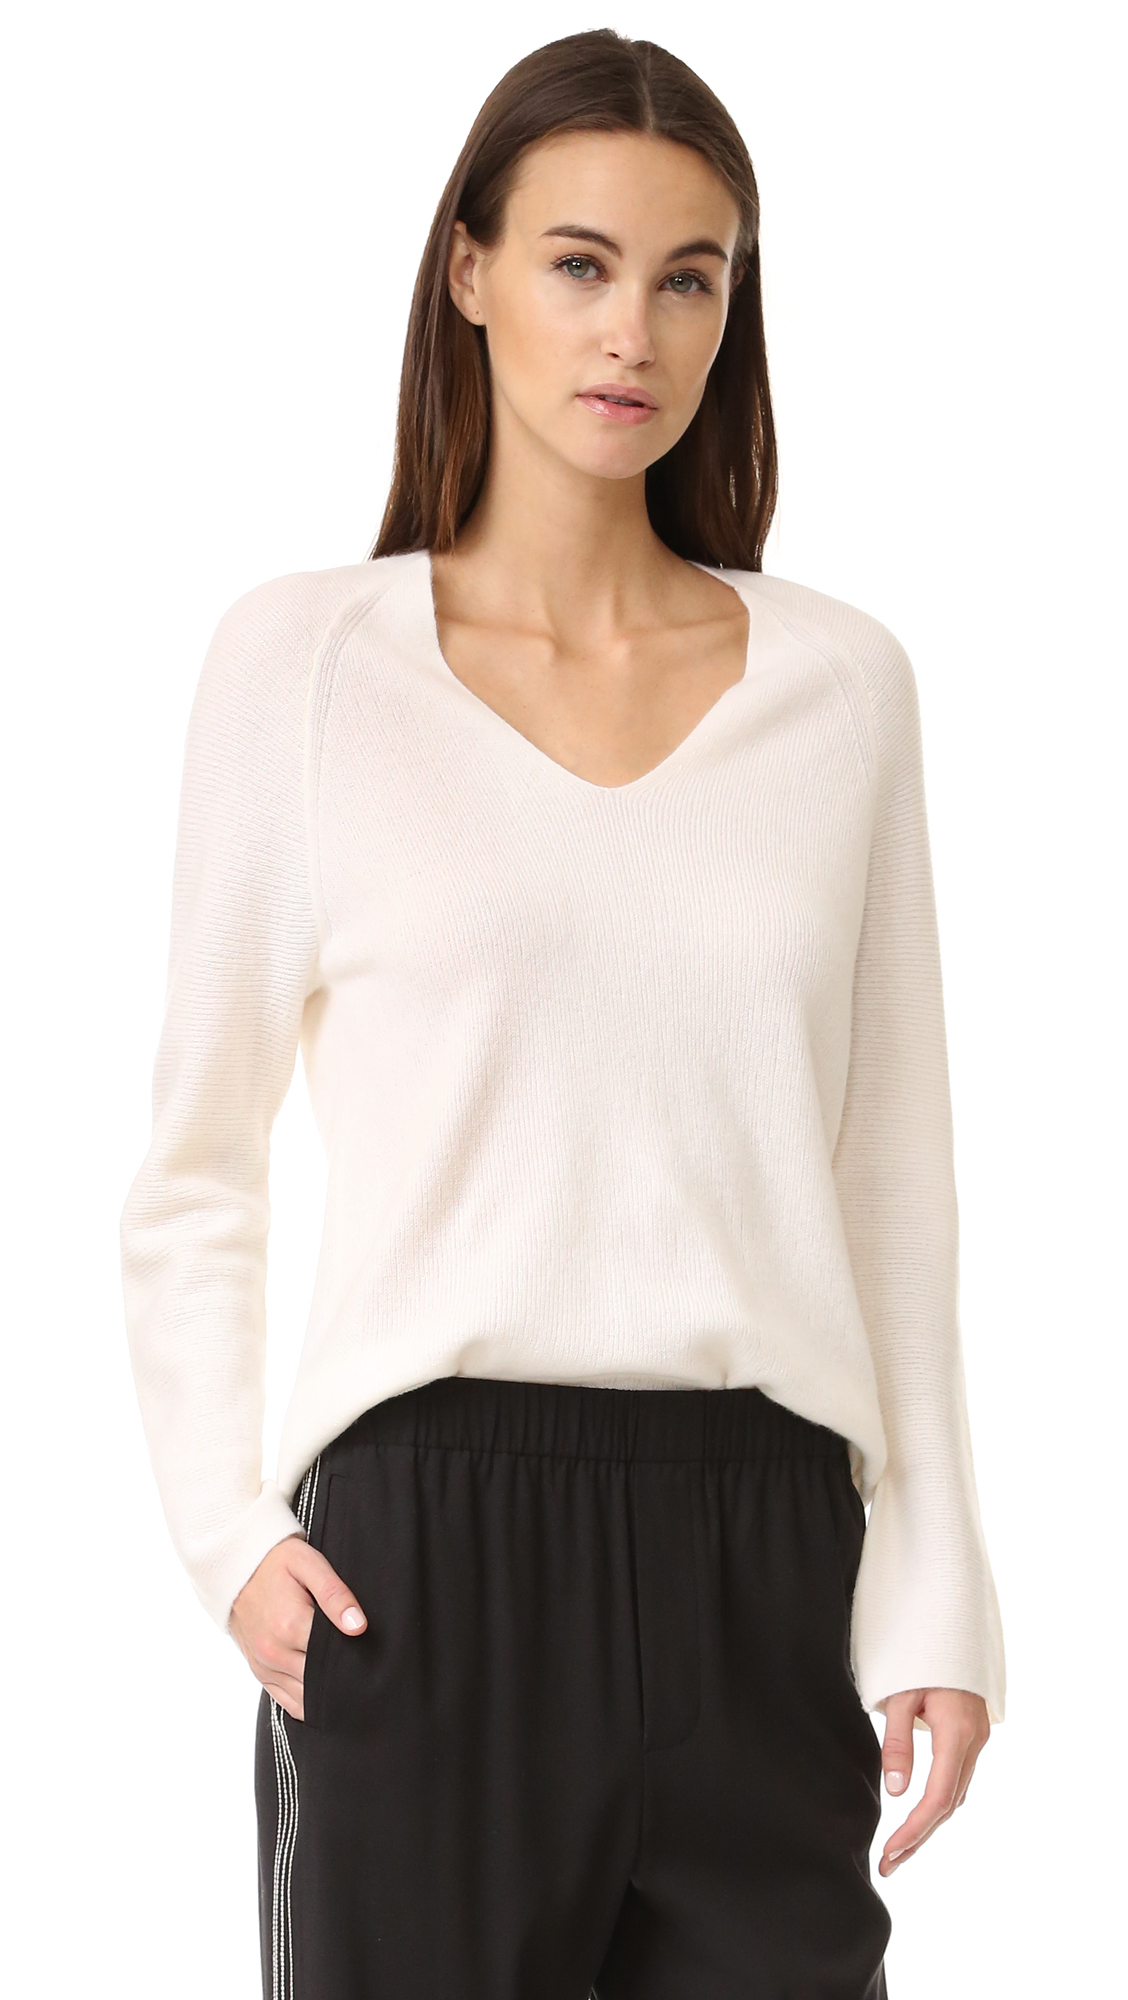 Vince Deep V Cashmere Sweater - Off White at Shopbop